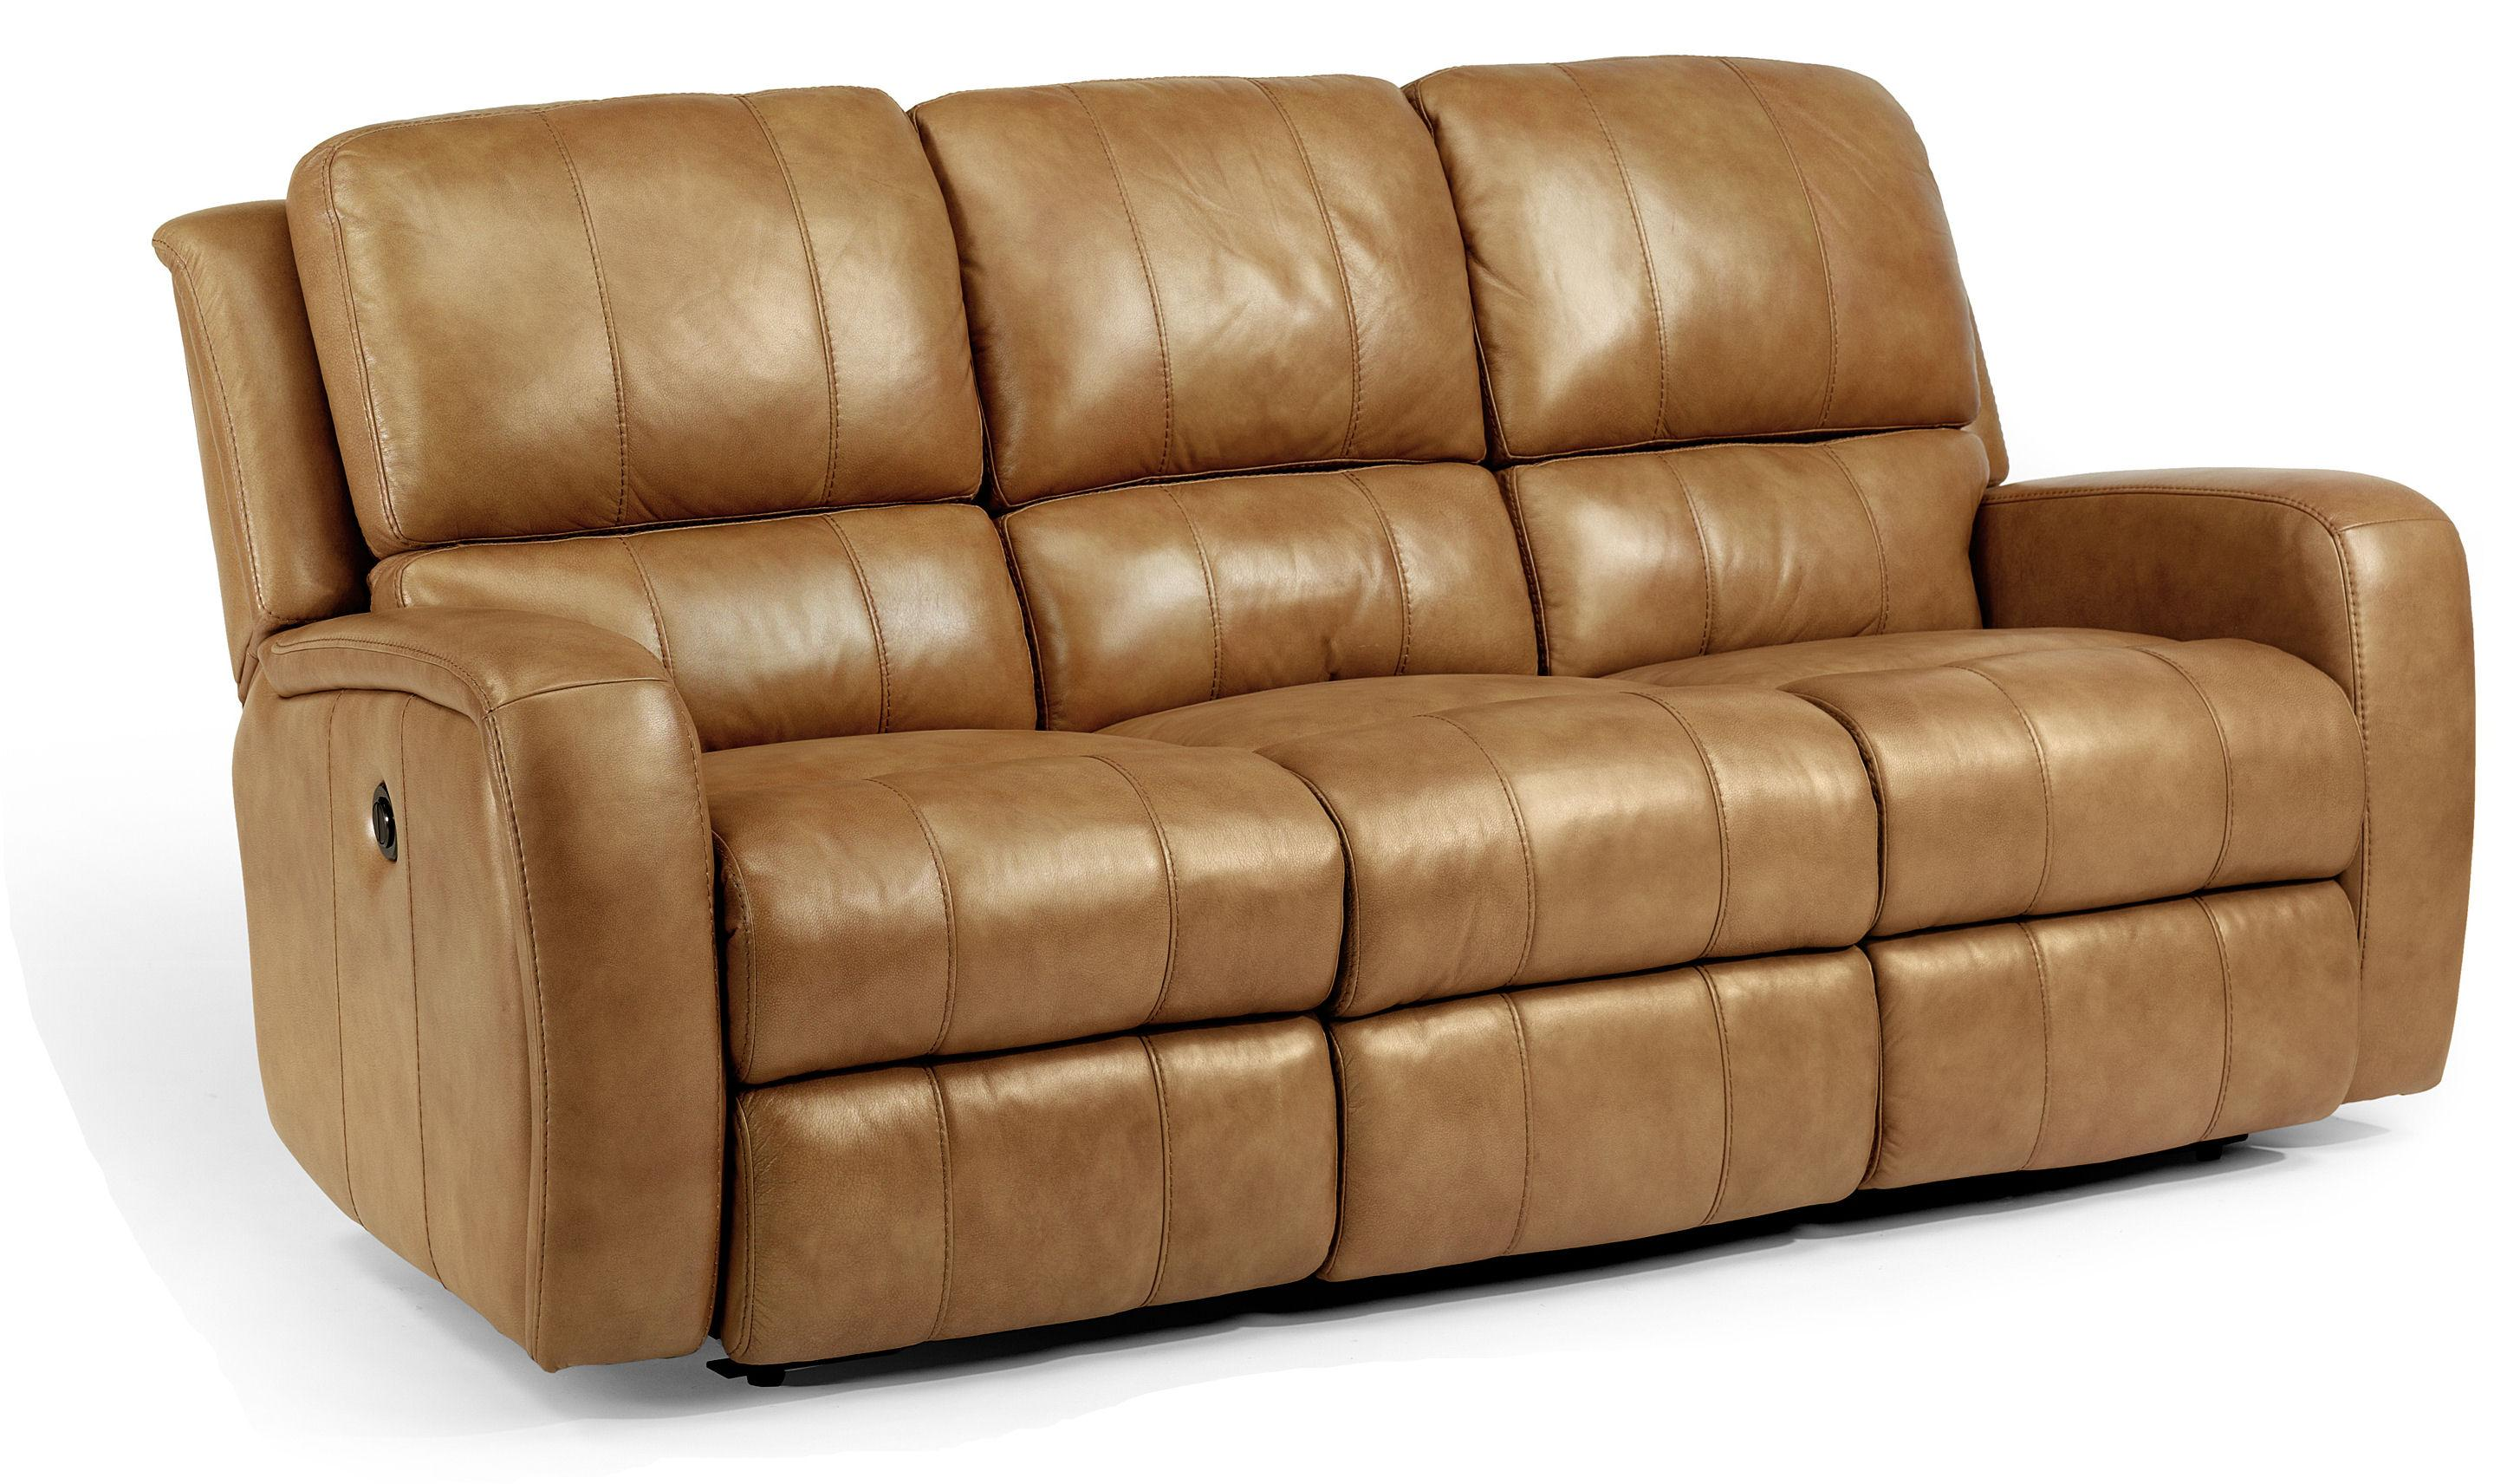 Flexsteel Latitudes-Hammond Double Reclining Sofa w/ Power - Item Number: 1157-62P